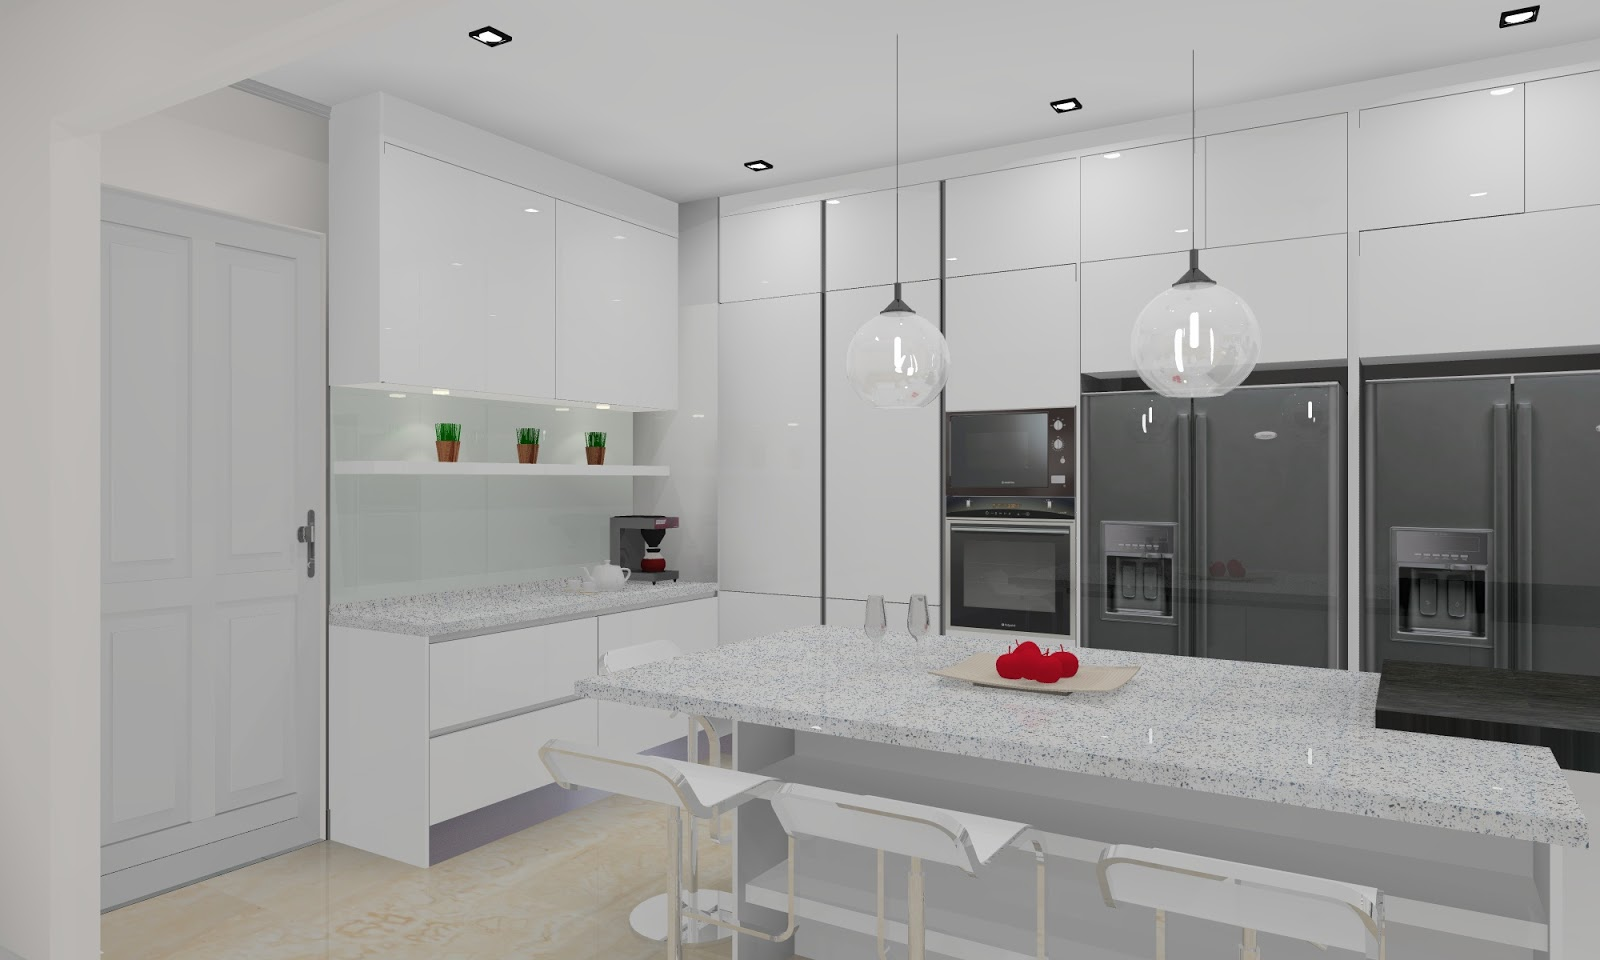 full height kitchen cabinets kitchen cabinet height Height Kitchen Cabinets